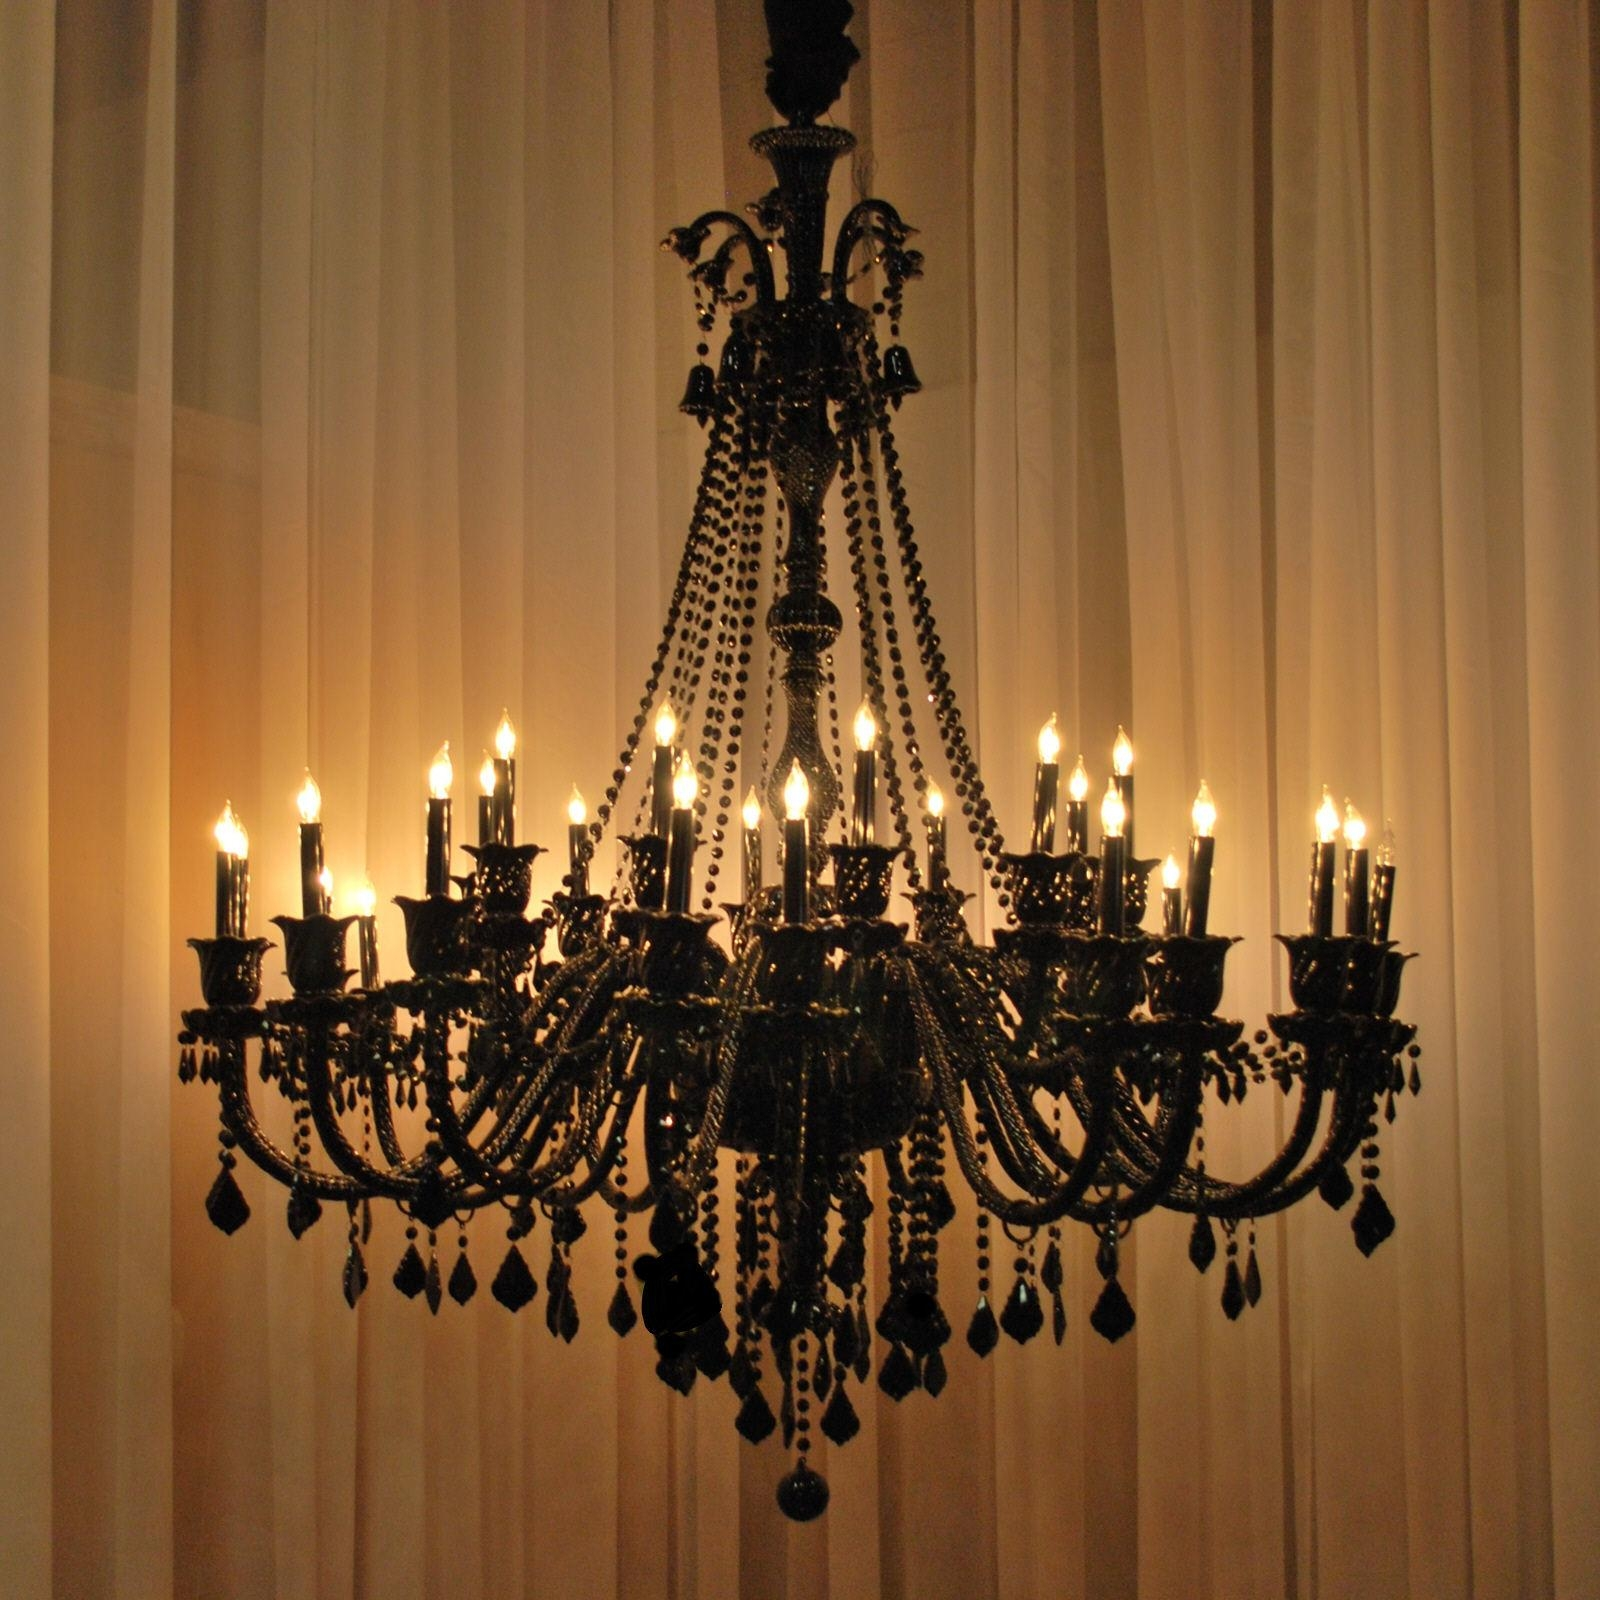 Popular Photo of Large Black Chandelier